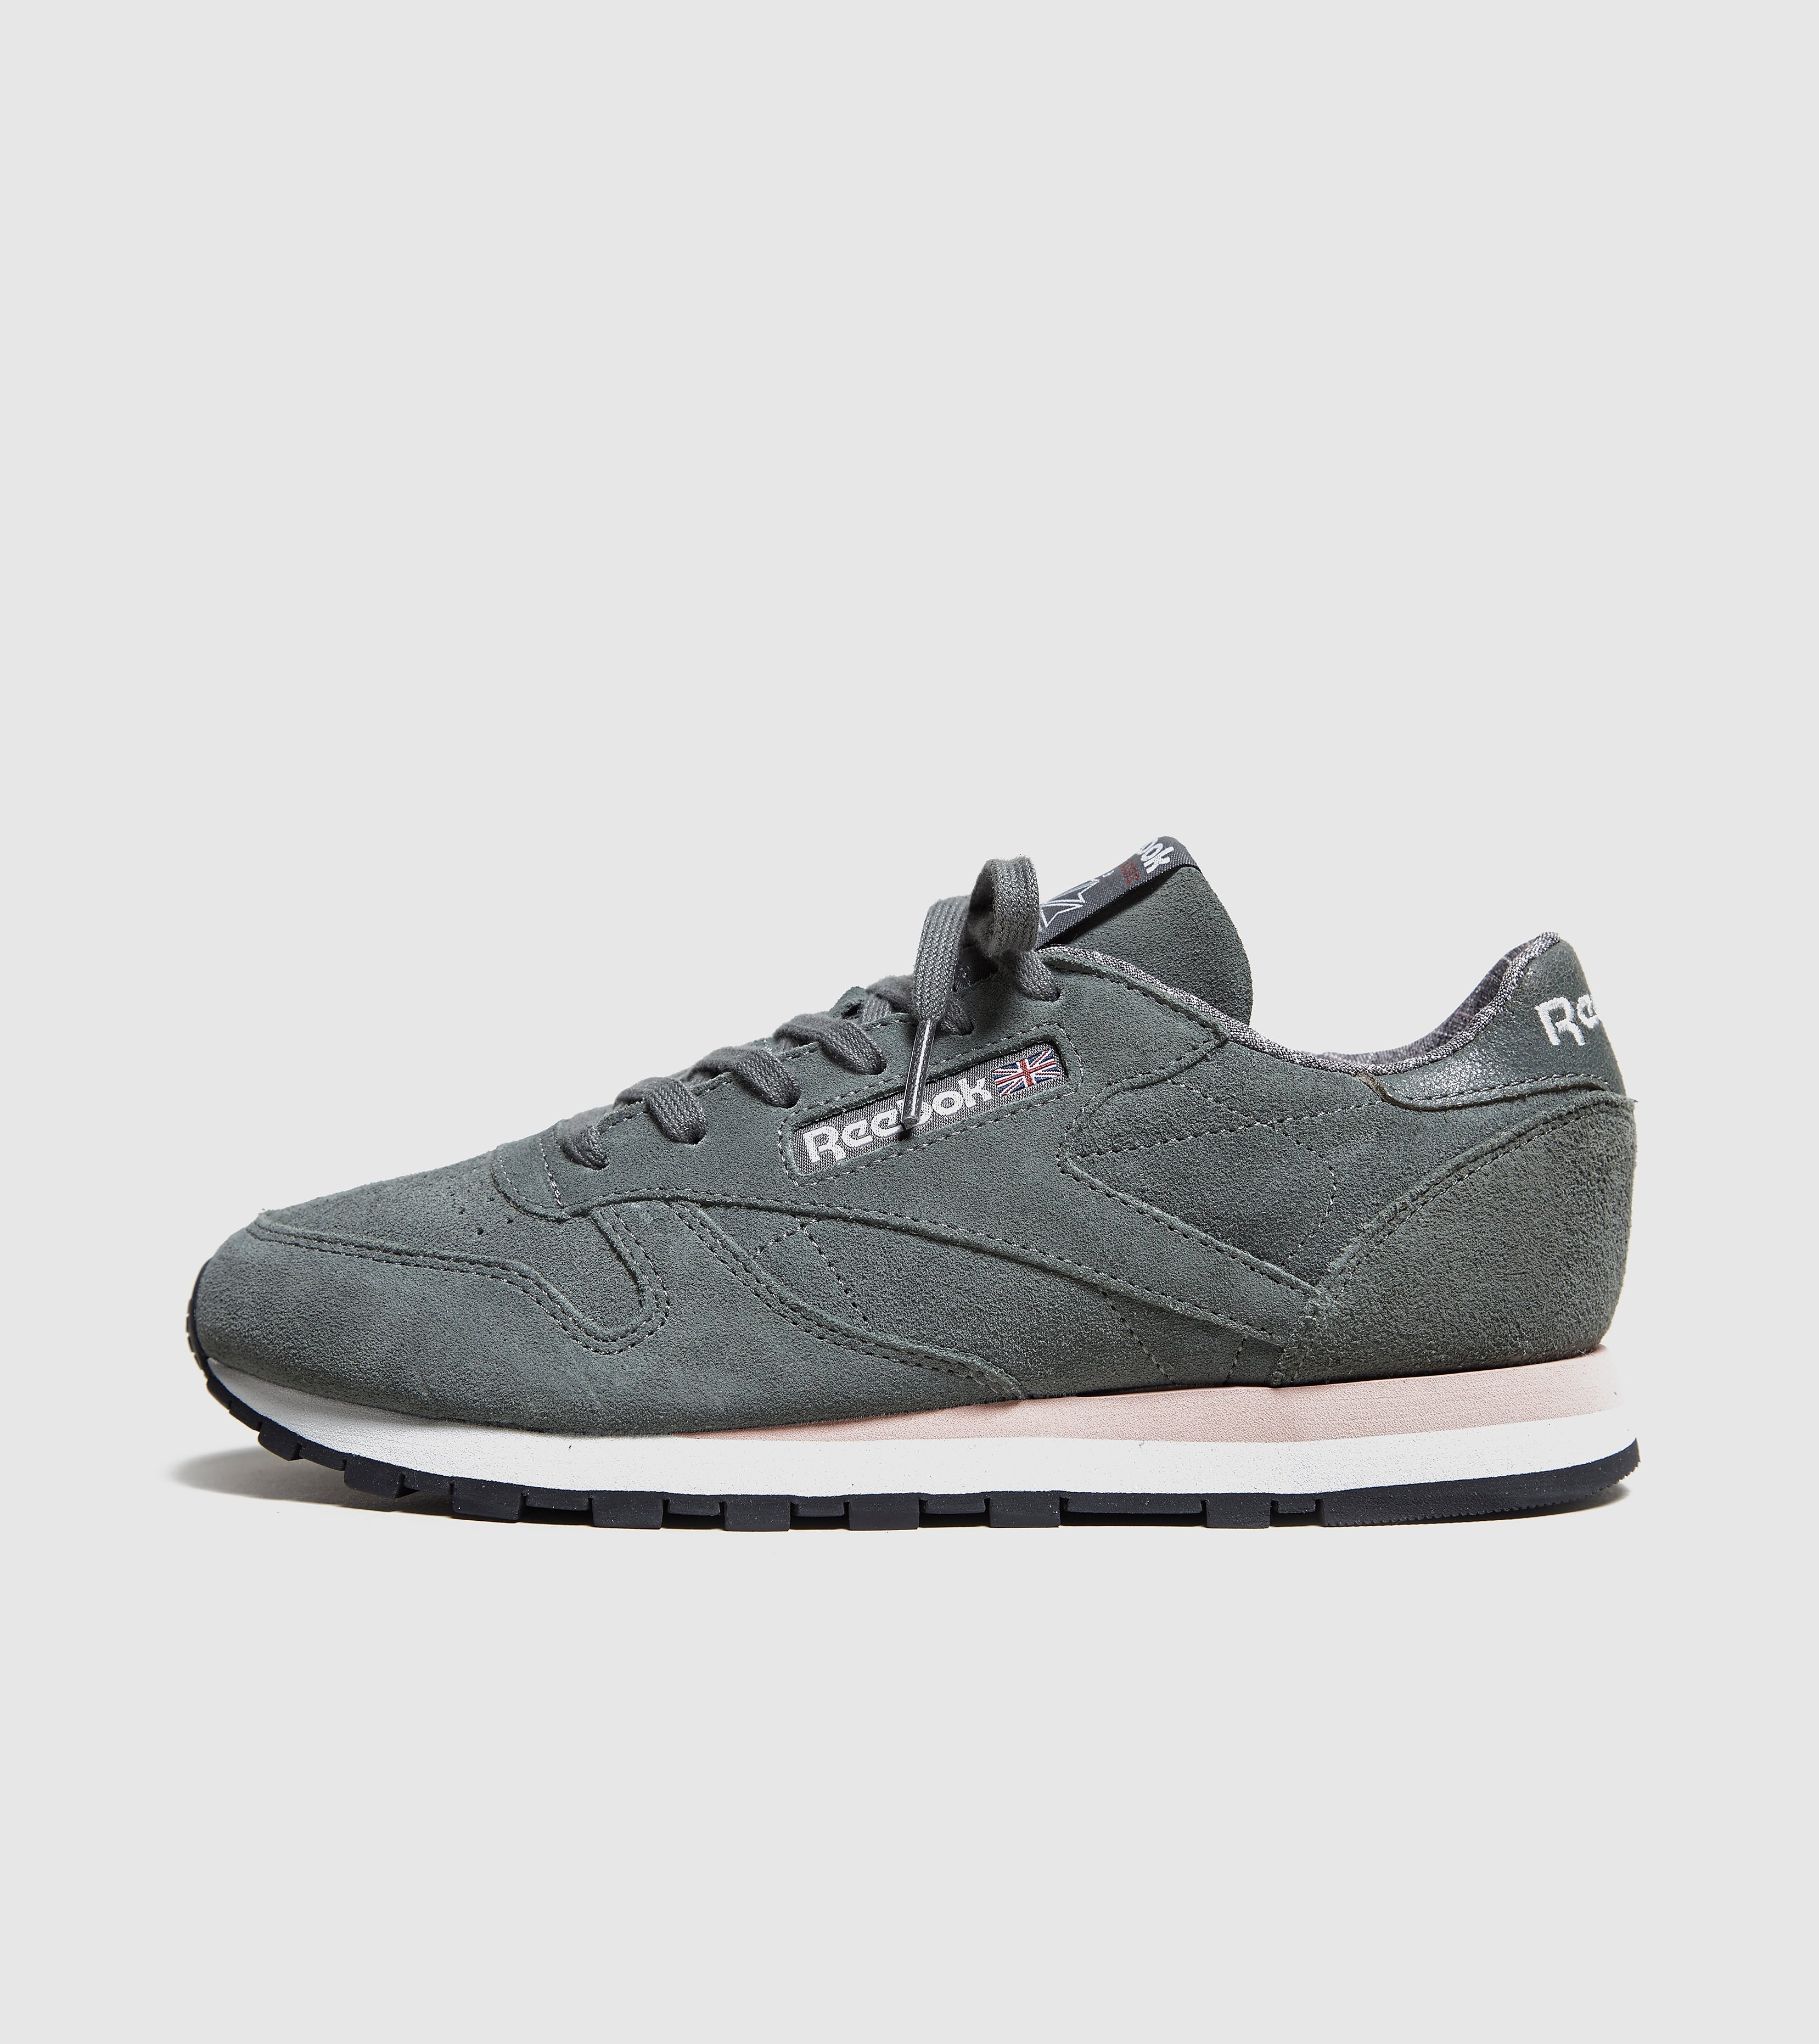 Reebok Classic Leather 'Weathered & Washed' Women's